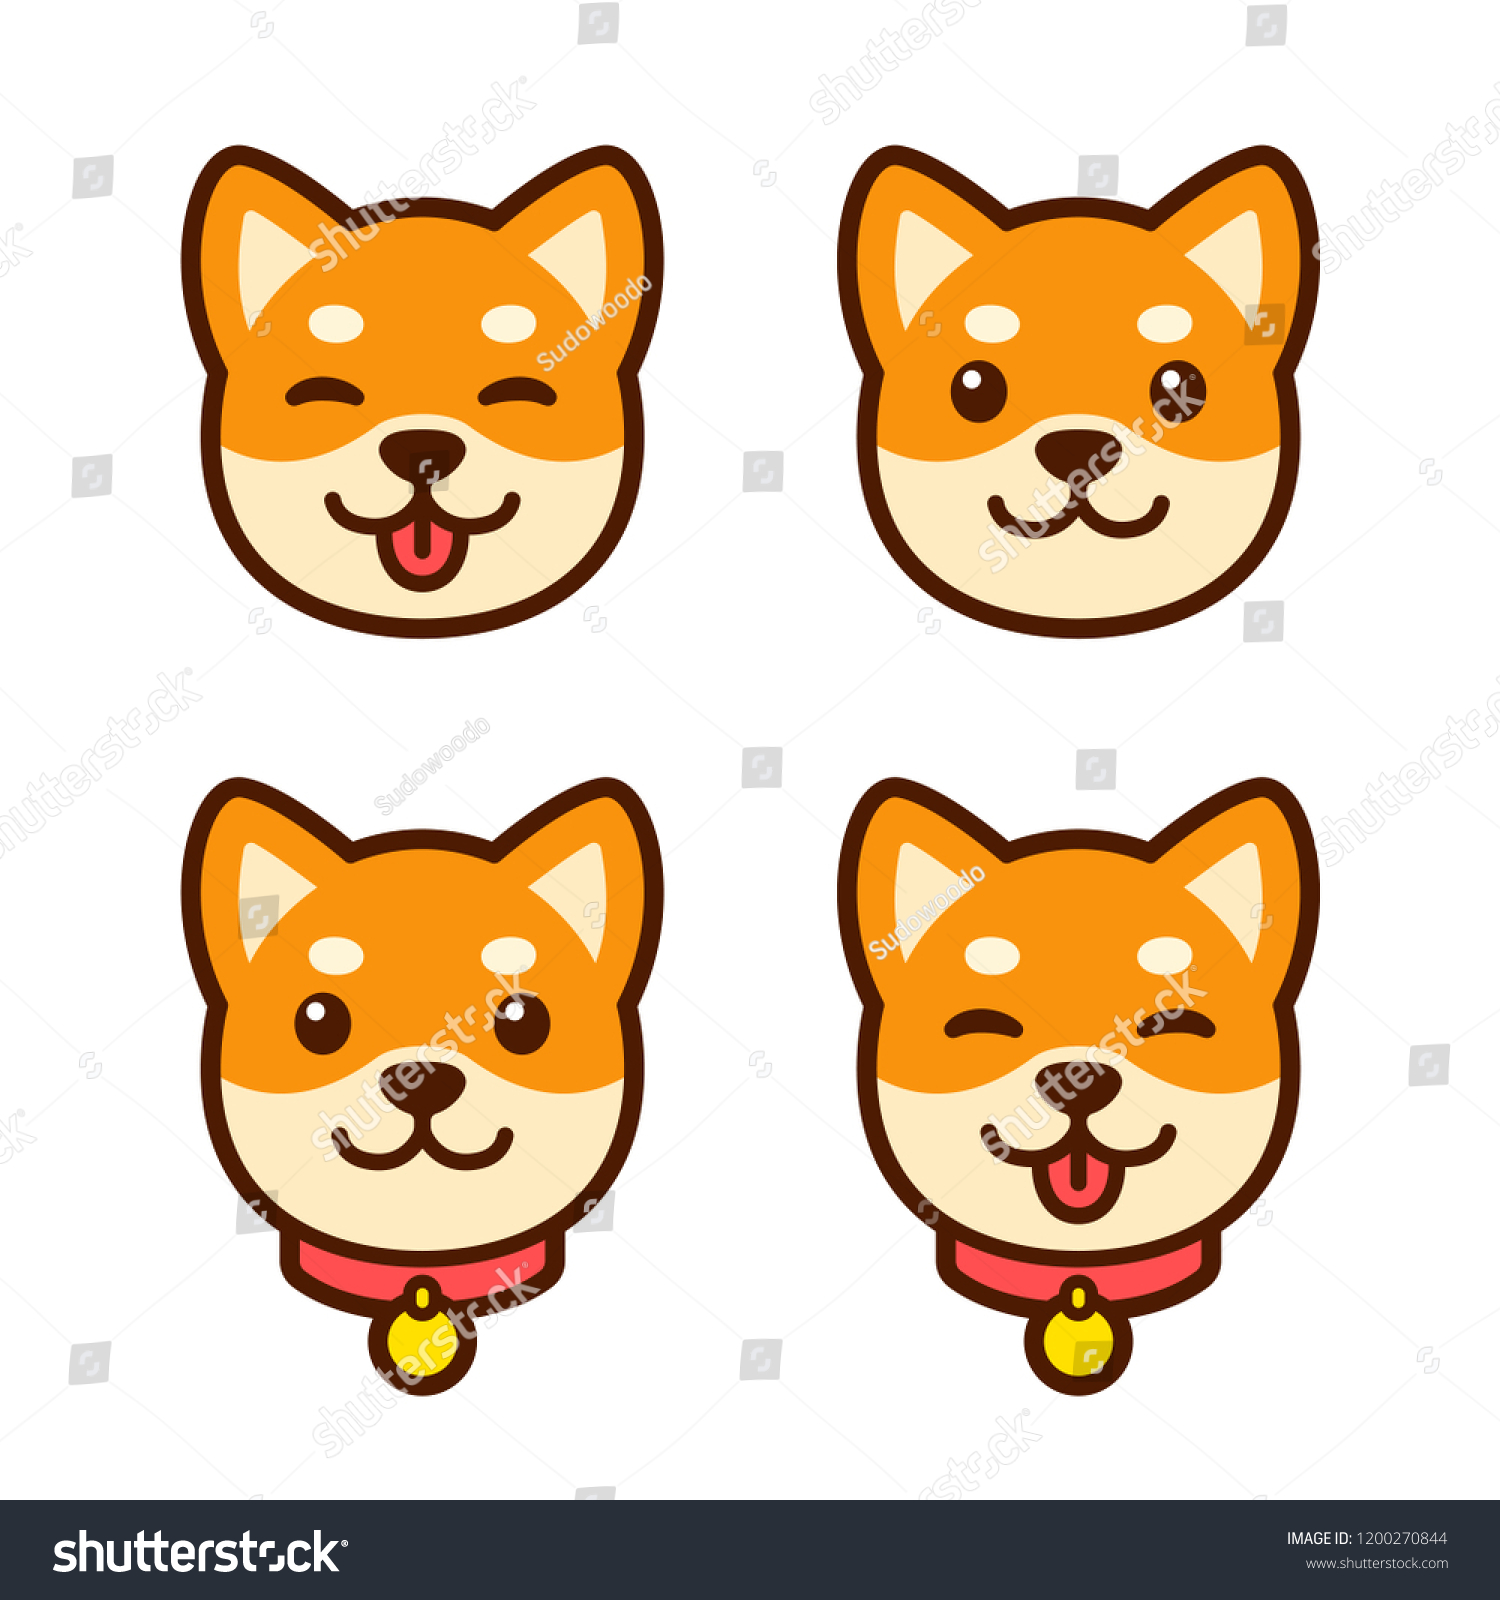 Cute Cartoon Shiba Inu Puppy Face Stock Vector Royalty Free 1200270844